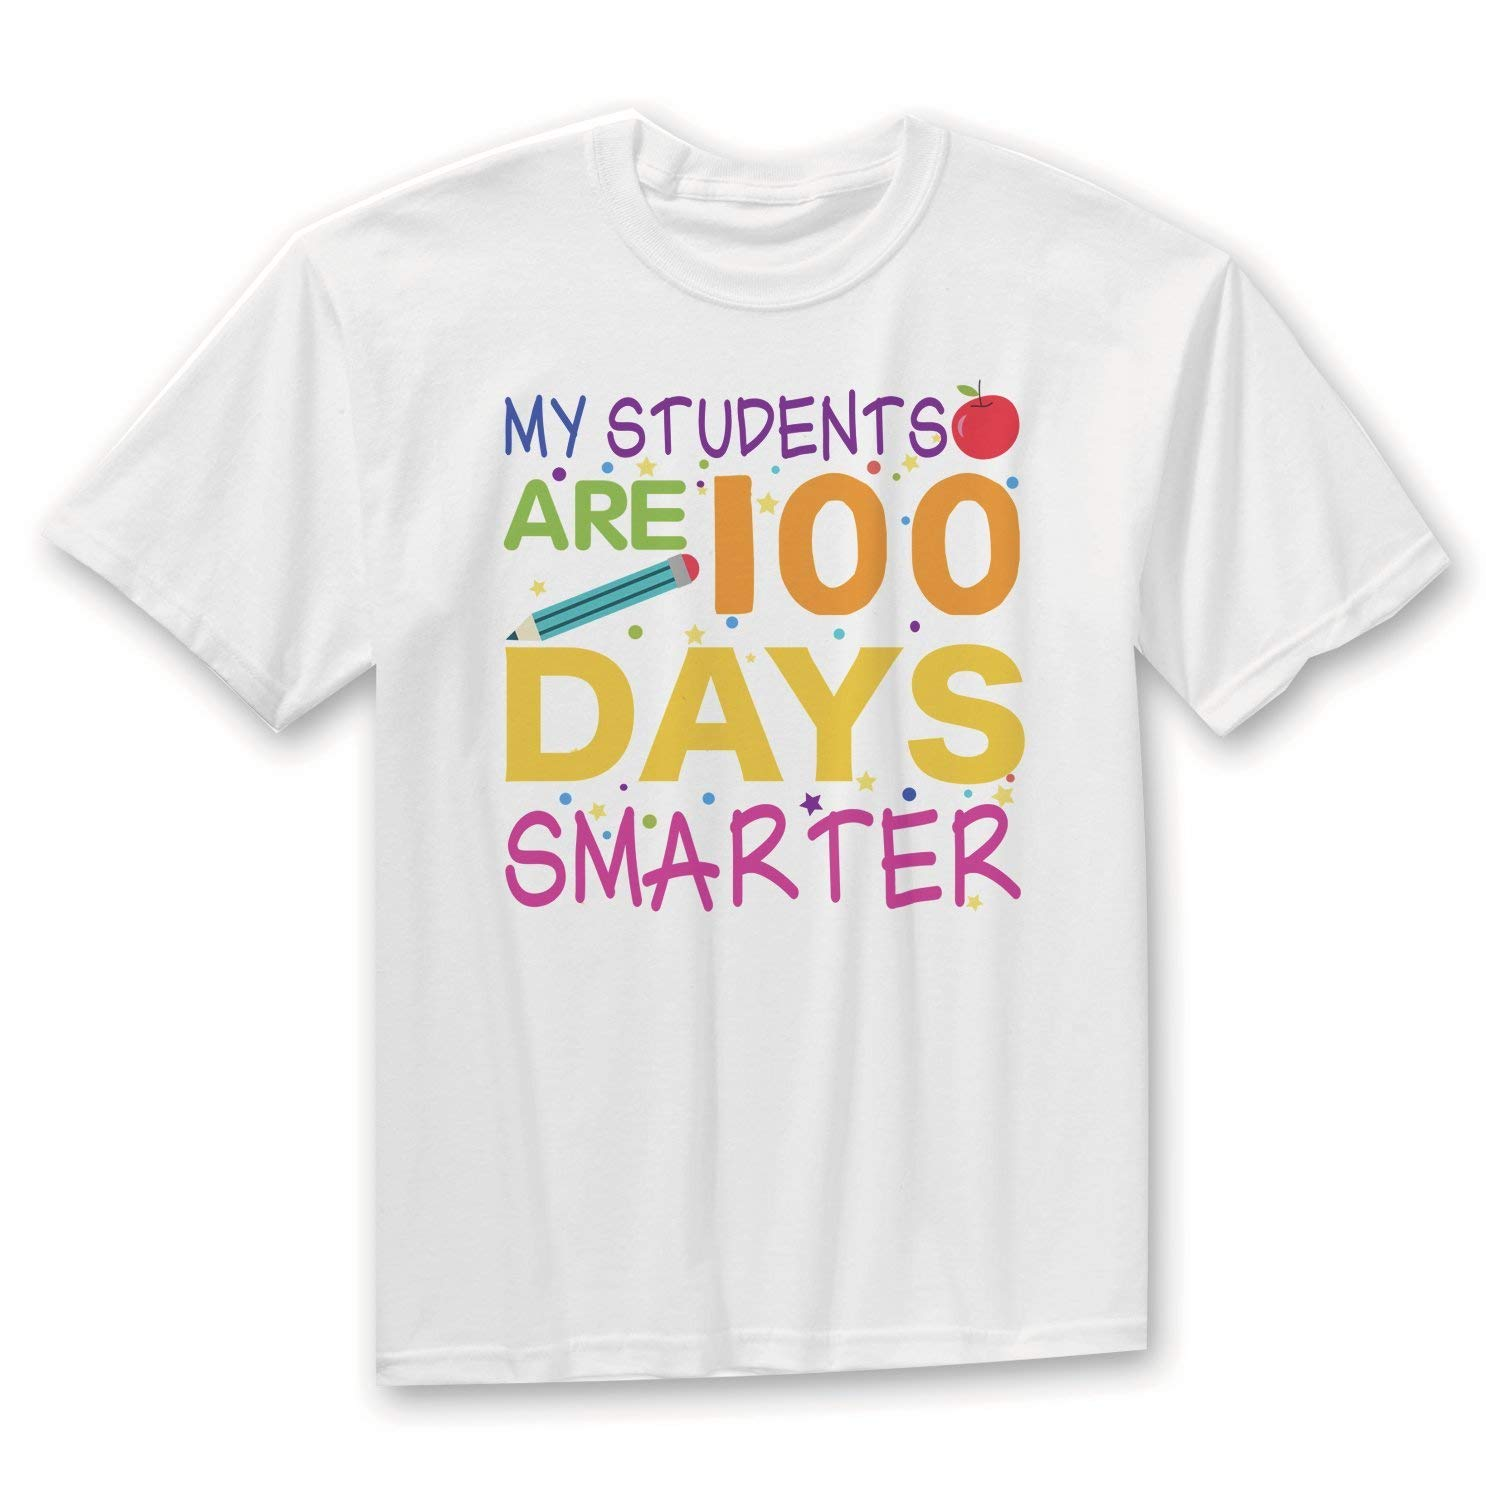 100th Day Teacher Shirt, Teacher Shirt, My Students Are 100 Days Smarter Shirt, 100th Day Teacher T-Shirt, 100th Day of School Shirt, Teach